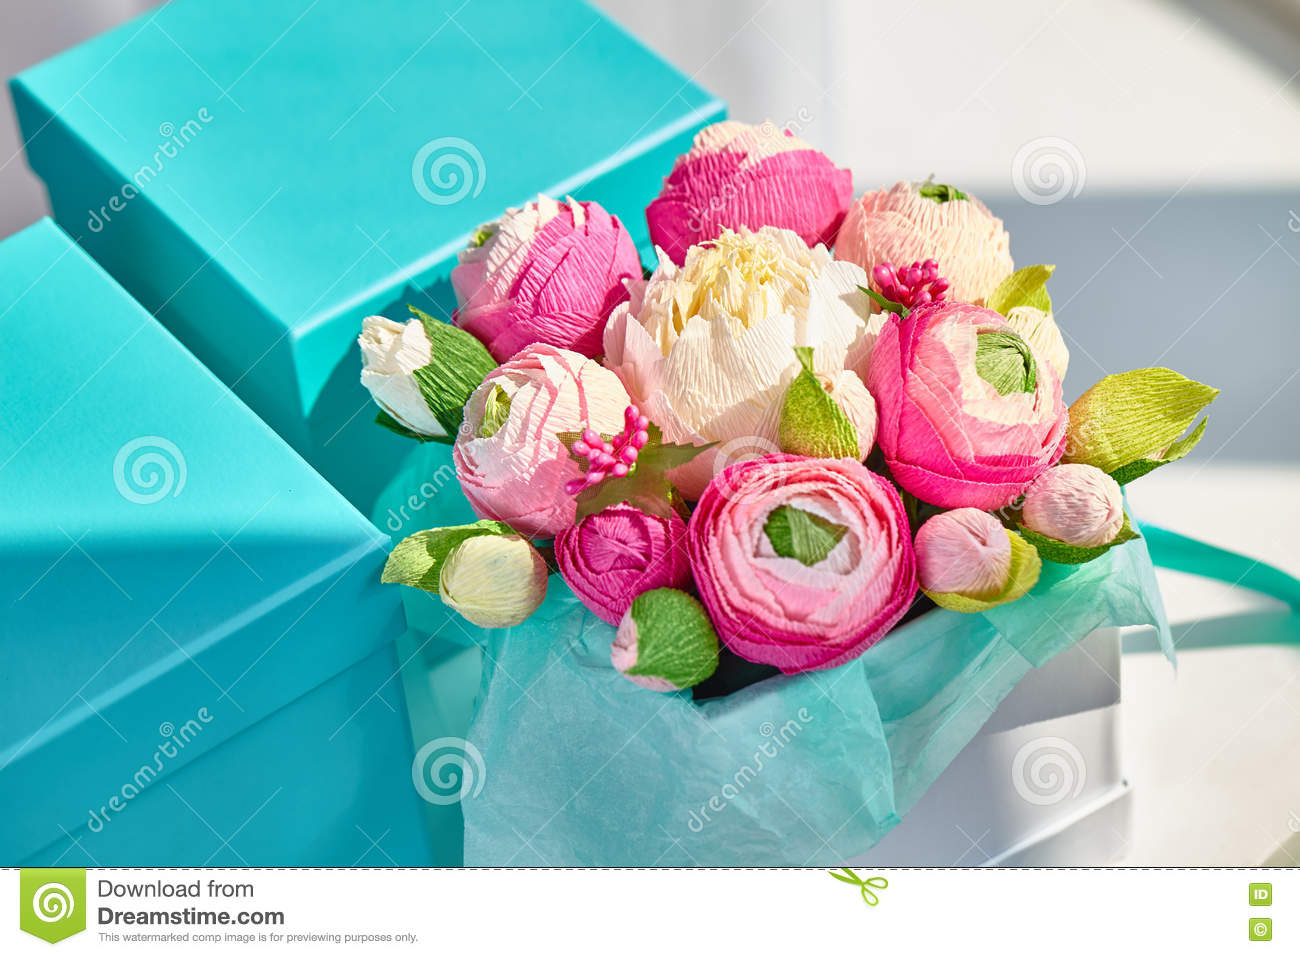 Bright Bouquet Of Paper Flowers In Turquoise Square Box Stock Image